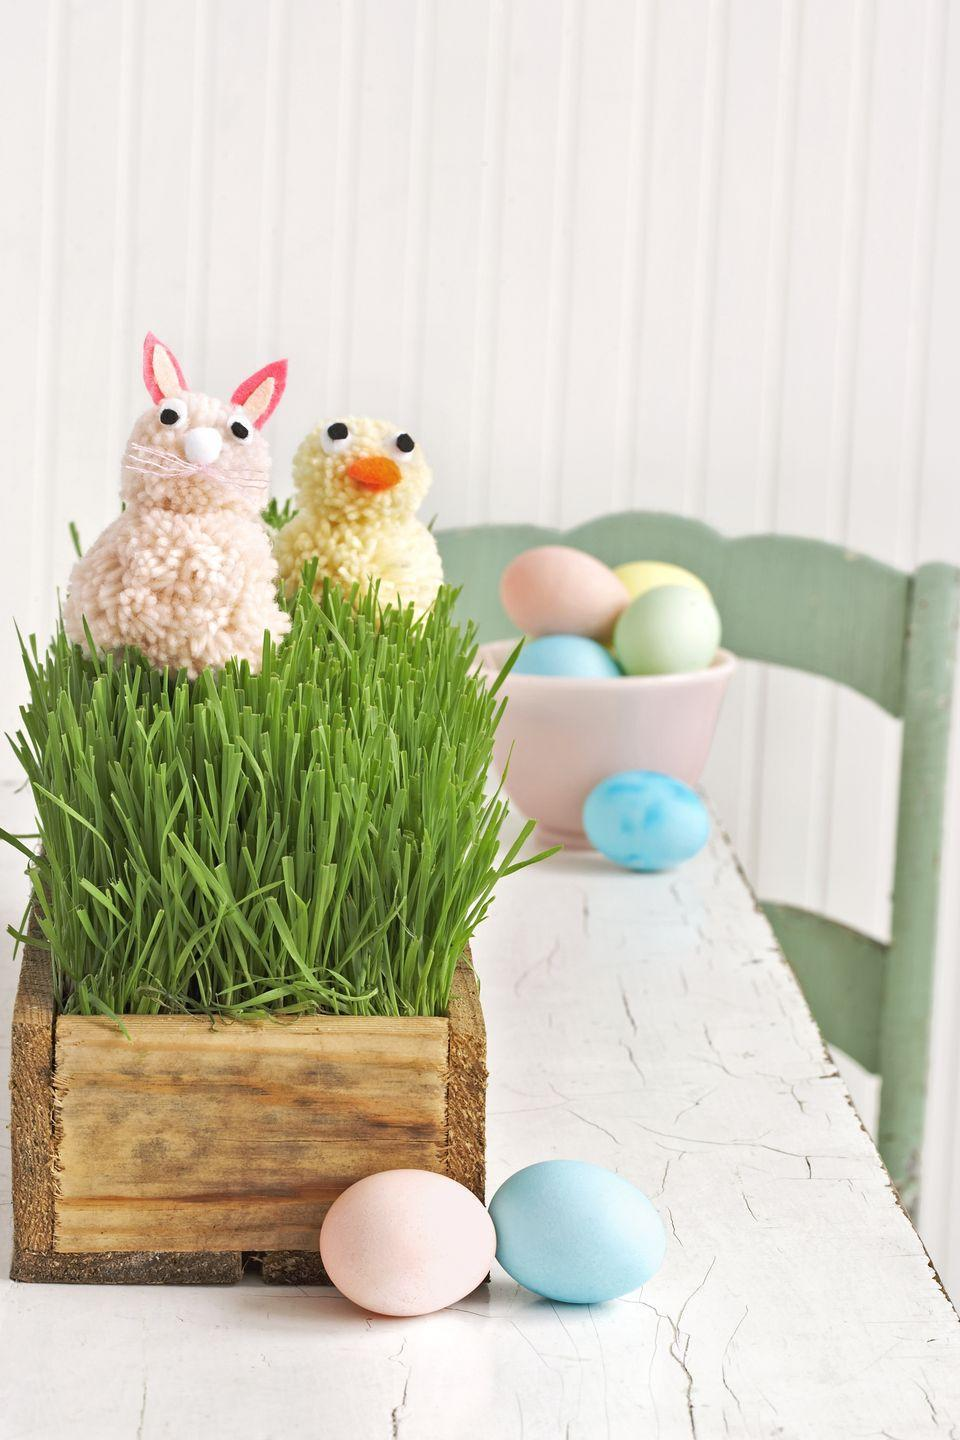 "<p>To create this spring chicken—and bunny—hot-glue two pom-poms together, using the smaller tool to make the head and the larger for the body. From craft felt, cut out small black and white circles for the eyes and pink petal shapes in two sizes for the bunny's ears. Use <a href=""https://www.amazon.com/dp/B004O9S98S/ref=asc_df_B004O9S98S5347596"" rel=""nofollow noopener"" target=""_blank"" data-ylk=""slk:premade mini pom-poms"" class=""link rapid-noclick-resp"">premade mini pom-poms</a> for the nose and beak (just trim the orange pom-pom into an oval shape). Separate a one-inch length of <a href=""https://www.amazon.com/Premium-Rainbow-Color-Embroidery-Floss/dp/B016HUI756"" rel=""nofollow noopener"" target=""_blank"" data-ylk=""slk:embroidery floss"" class=""link rapid-noclick-resp"">embroidery floss</a> into strands, and knot it in the middle for bunny whiskers. Adhere everything with little dabs of hot glue (place the smaller items with tweezers), then nestle the completed figures in a box filled with wheatgrass—found at most farmers' markets and florists.</p><p><strong>RELATED:</strong> <a href=""https://www.countryliving.com/diy-crafts/how-to/g754/diy-pom-pom-0409/"" rel=""nofollow noopener"" target=""_blank"" data-ylk=""slk:How to Make a Pom-Pom in 5 Minutes"" class=""link rapid-noclick-resp"">How to Make a Pom-Pom in 5 Minutes</a></p>"